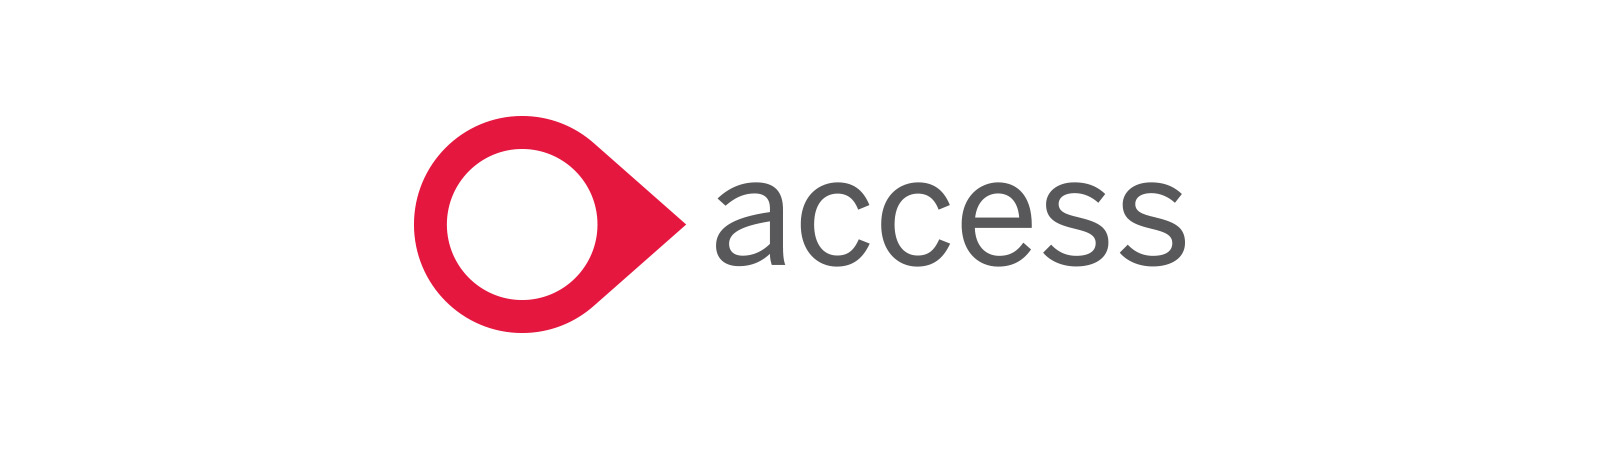 Access Technology Group Logo Image